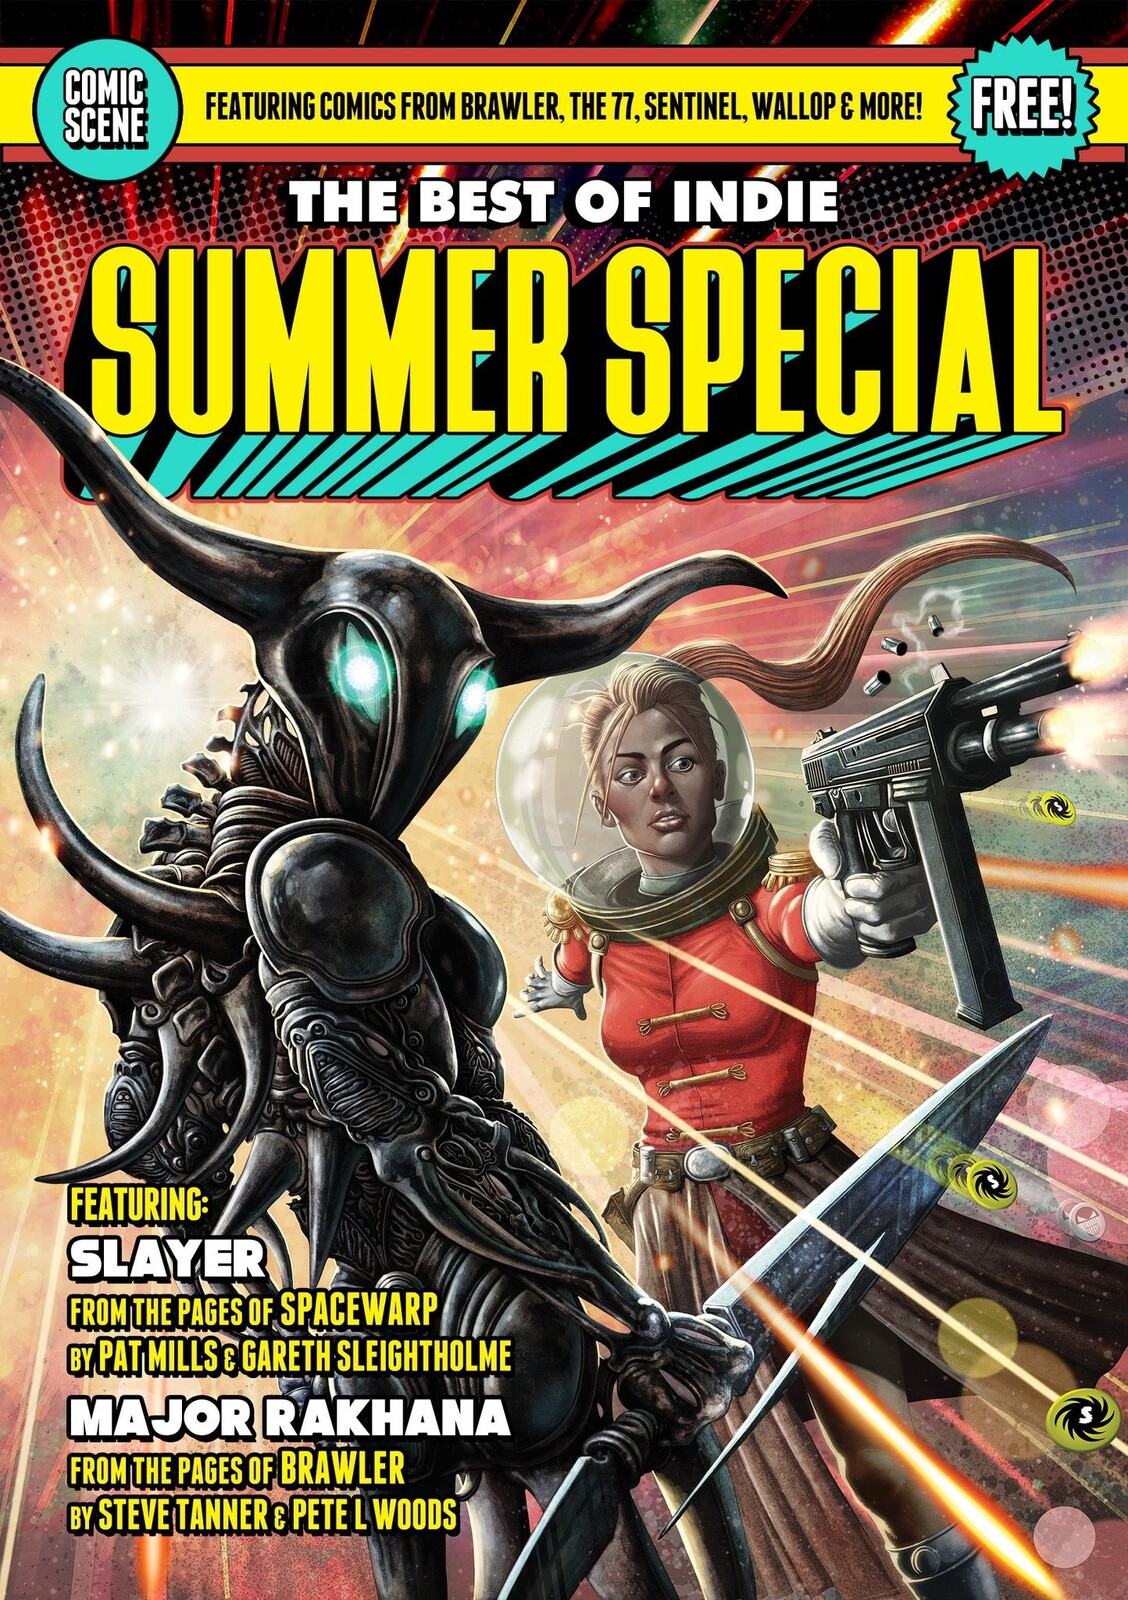 Comic Scene Summer Special Cover with text